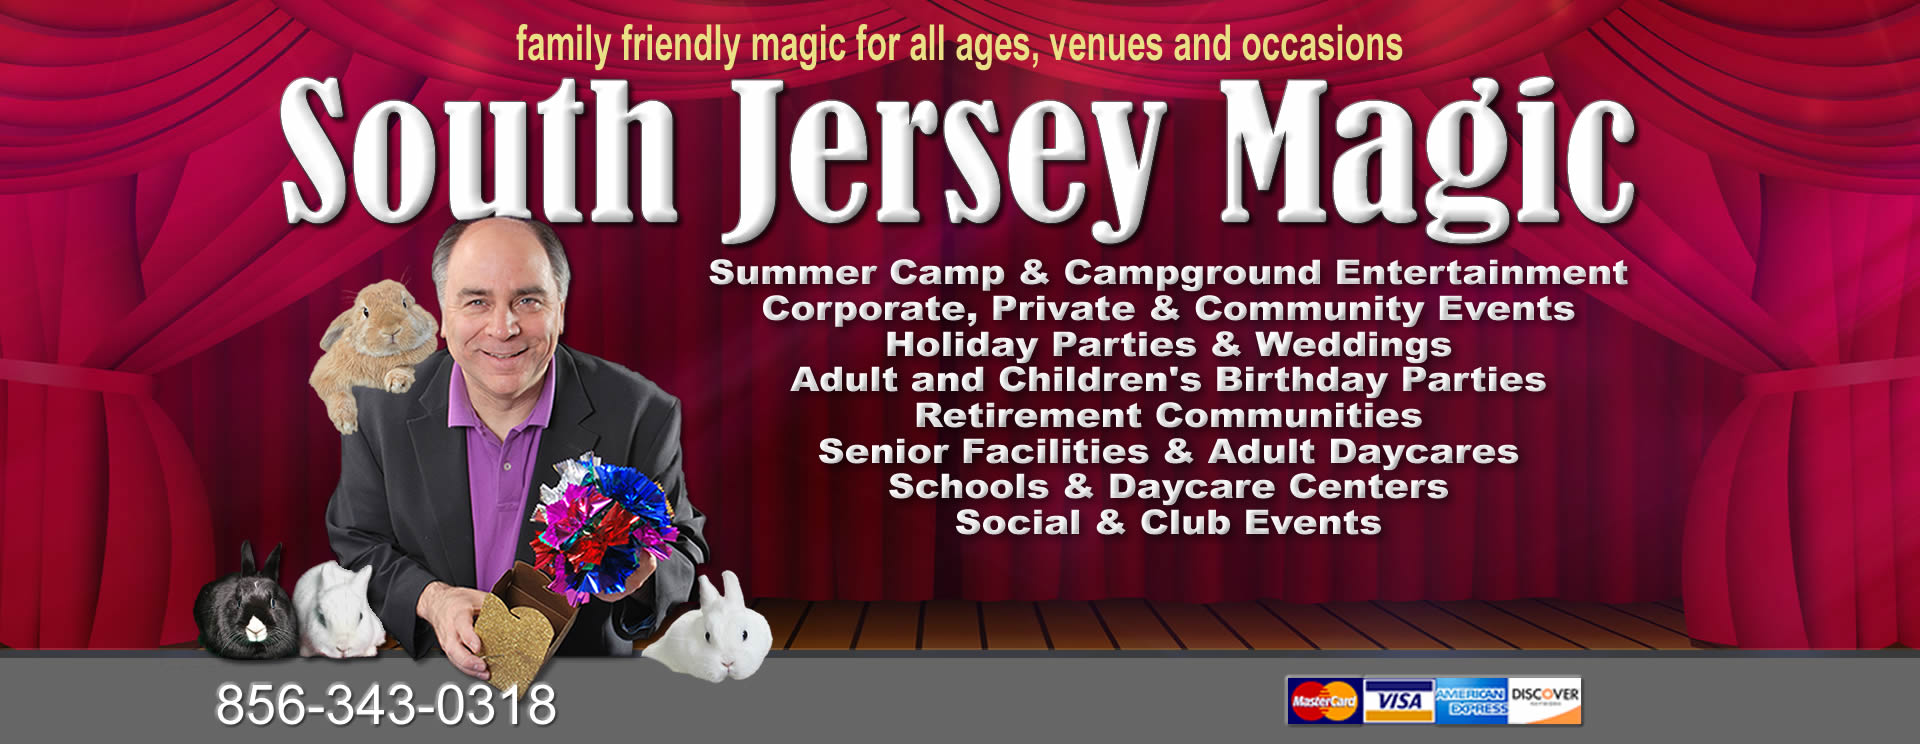 south_jersey_magic_nj_magician_jim_combs 4